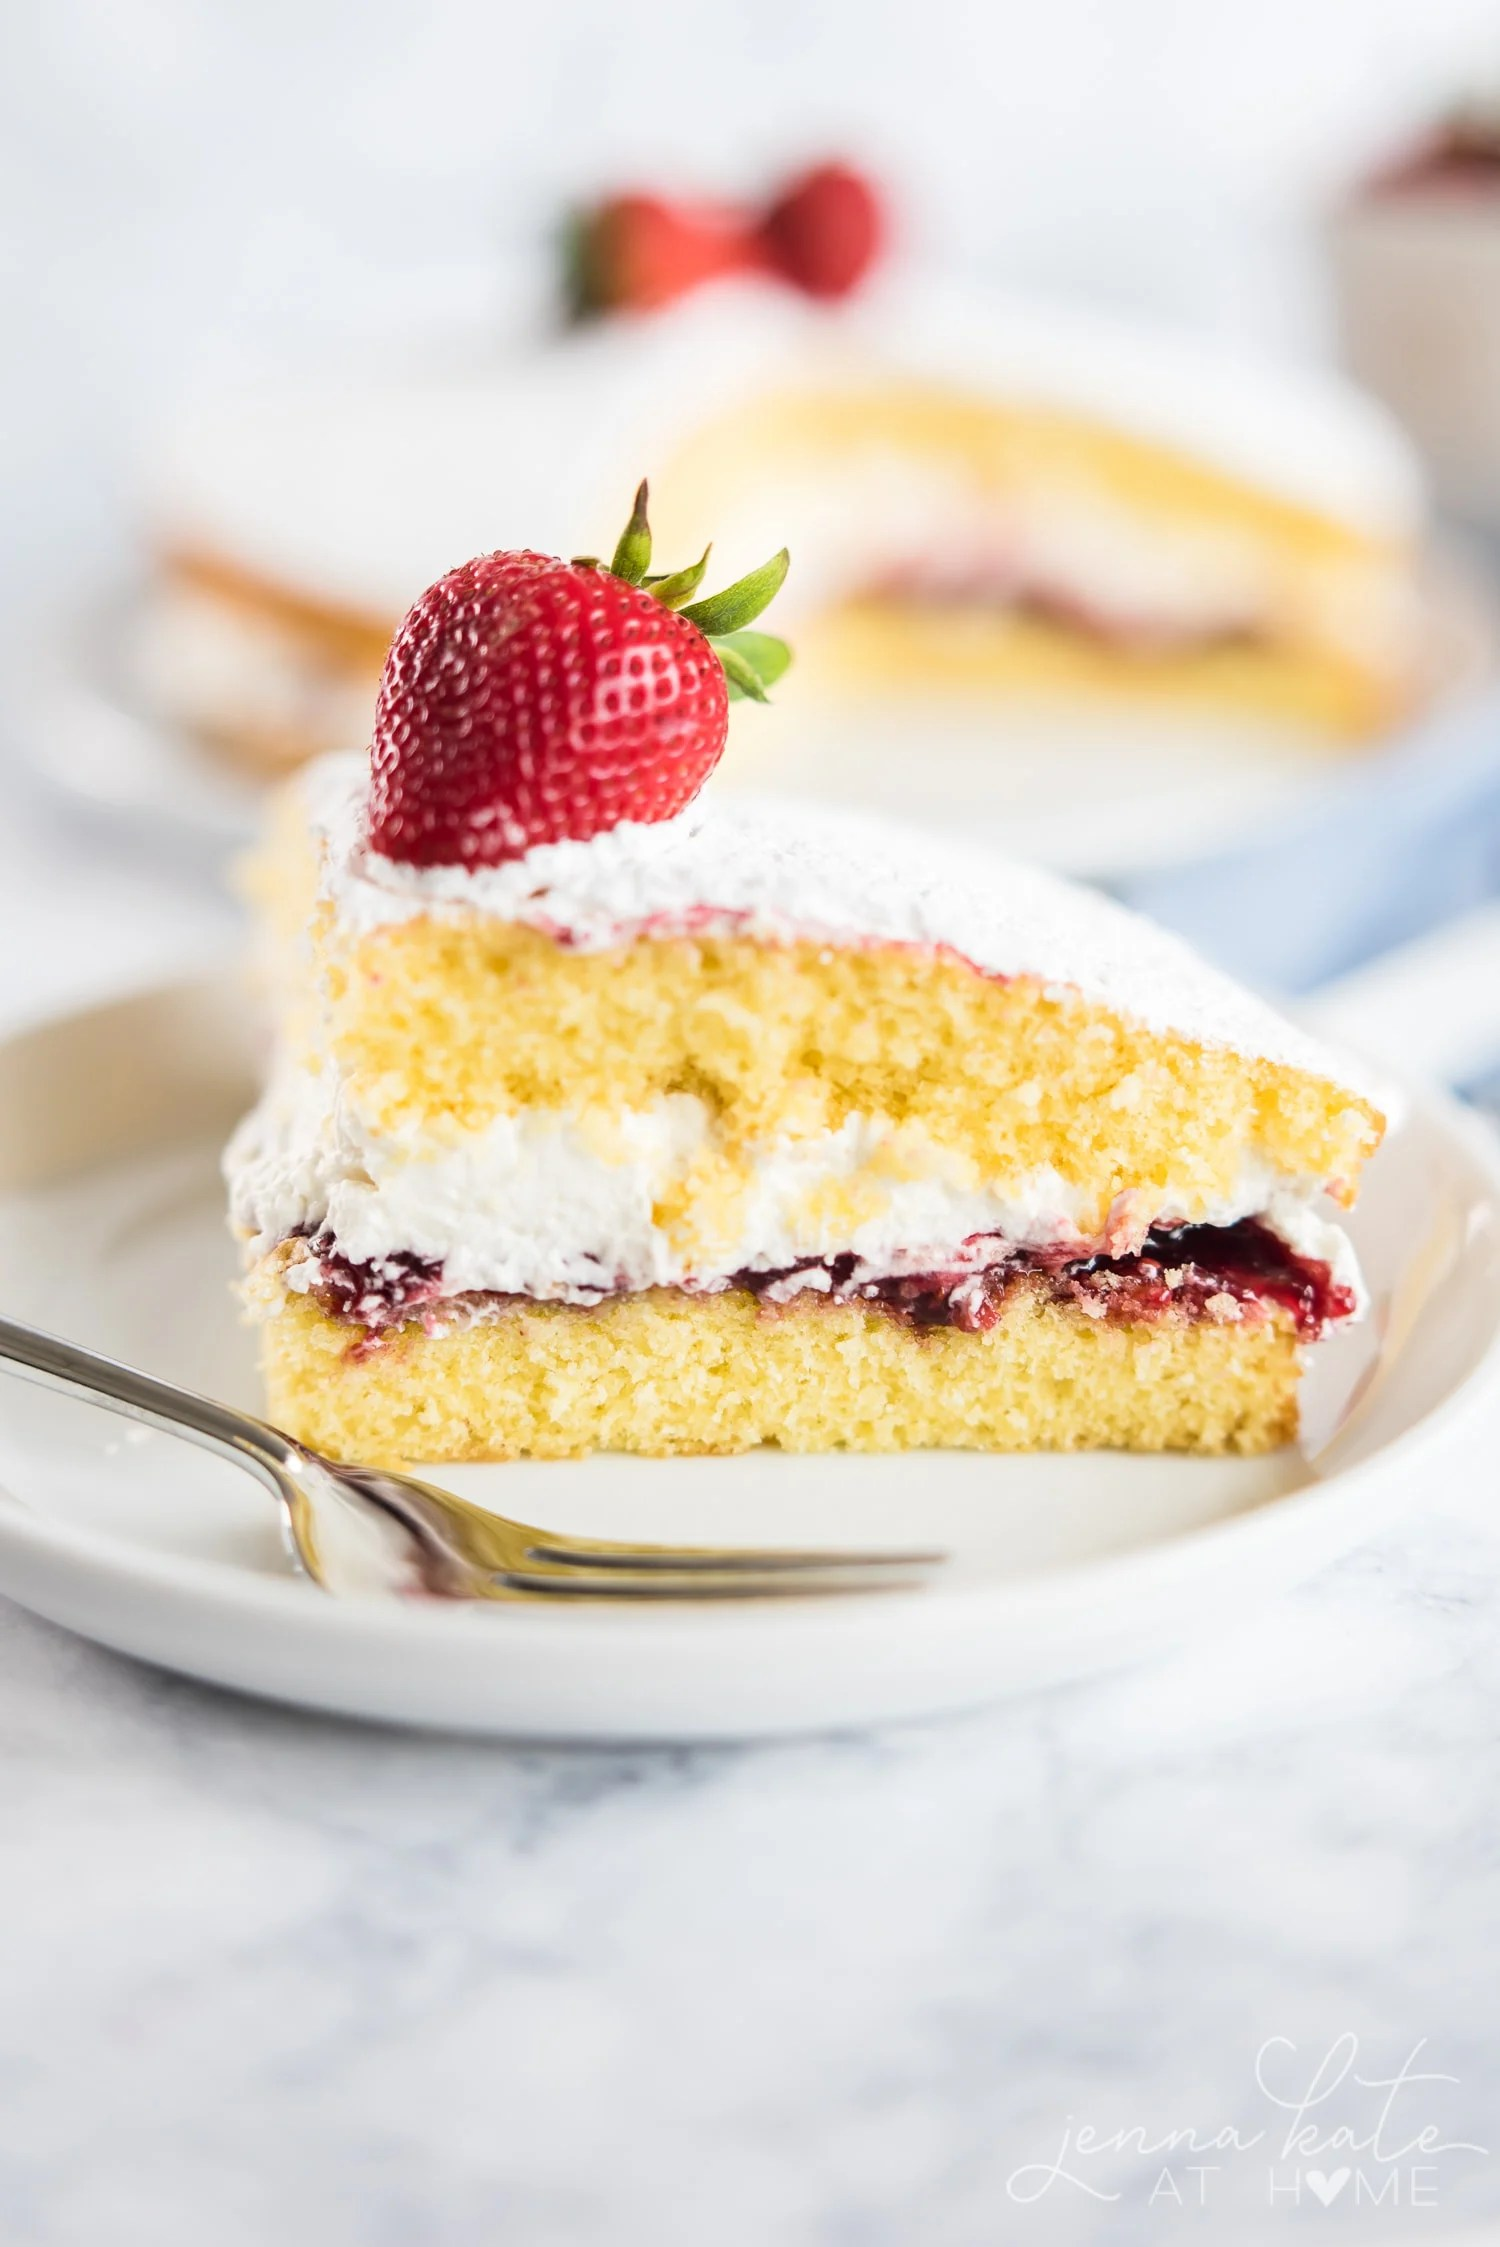 A slice of Victoria Sponge Cake is filled with a layer of raspberry filling and fresh whipped cream